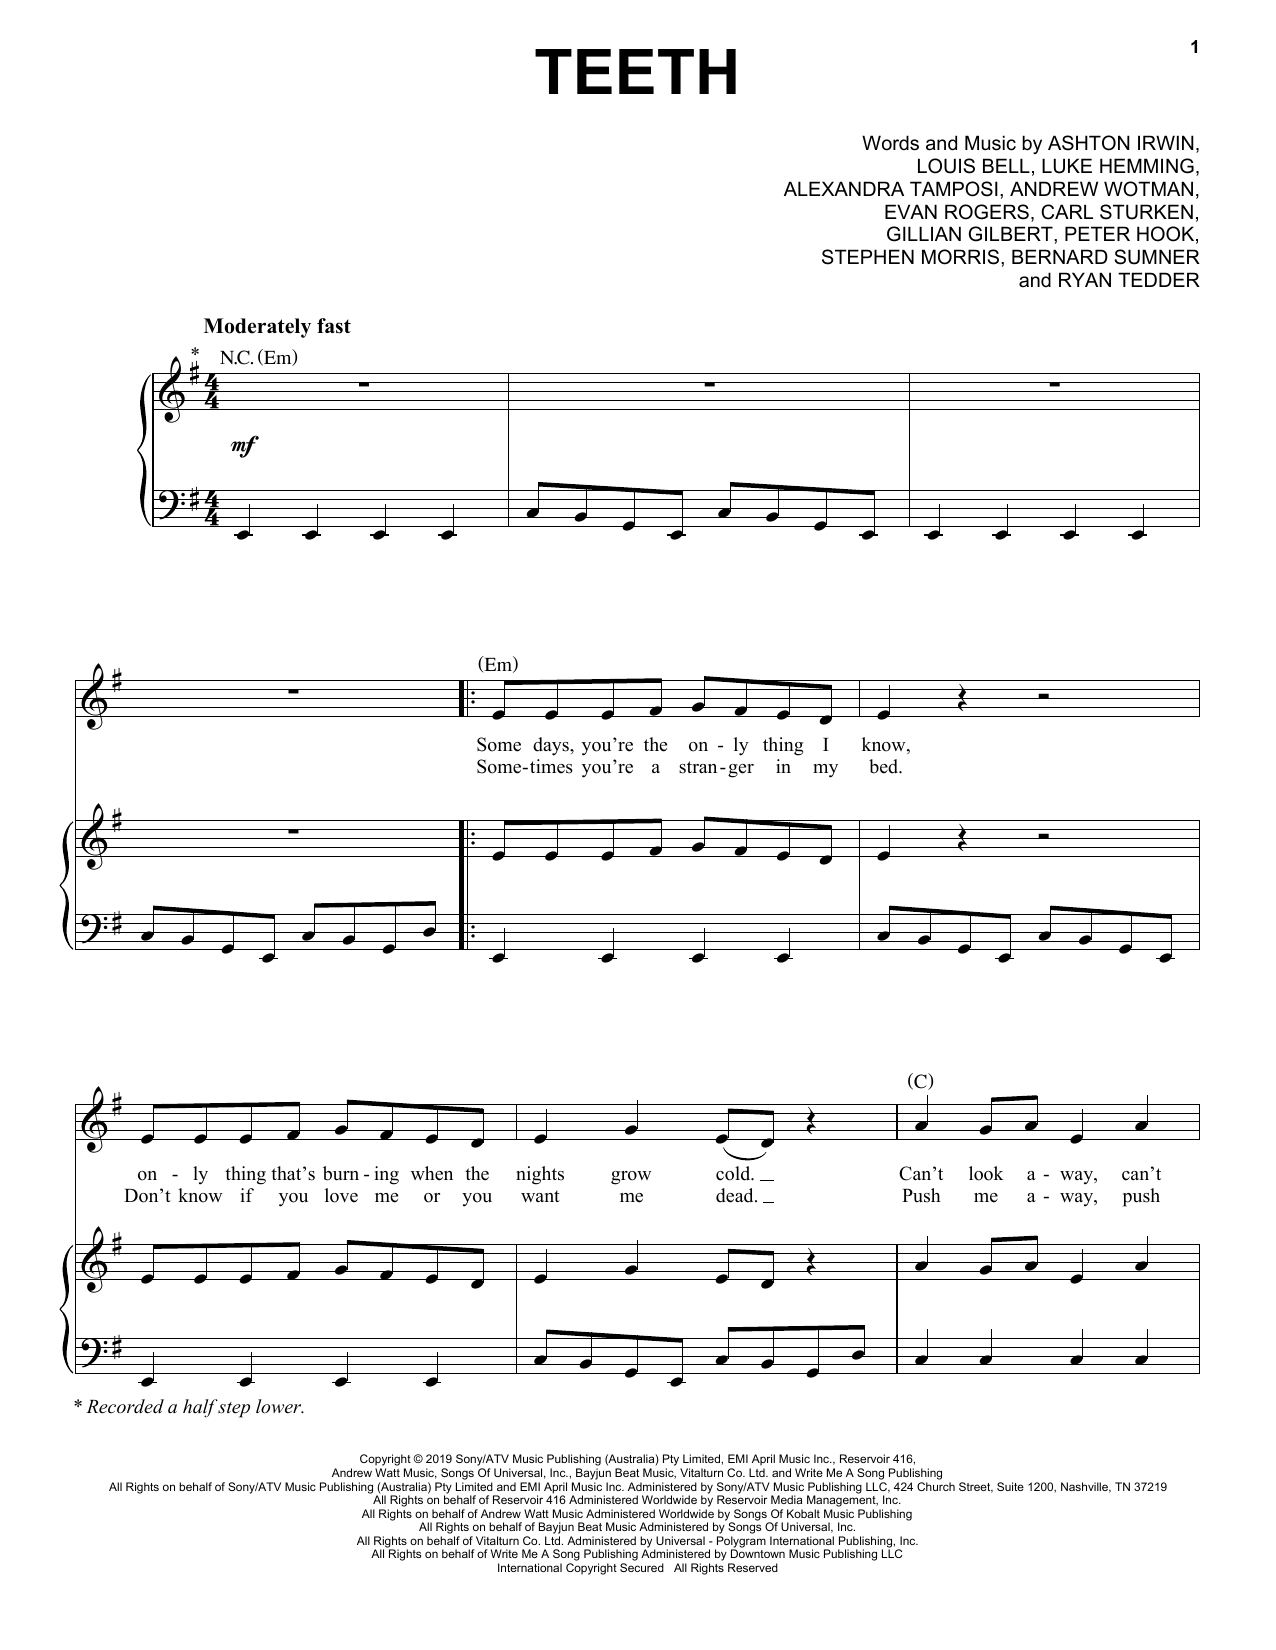 5 Seconds of Summer Teeth sheet music notes and chords